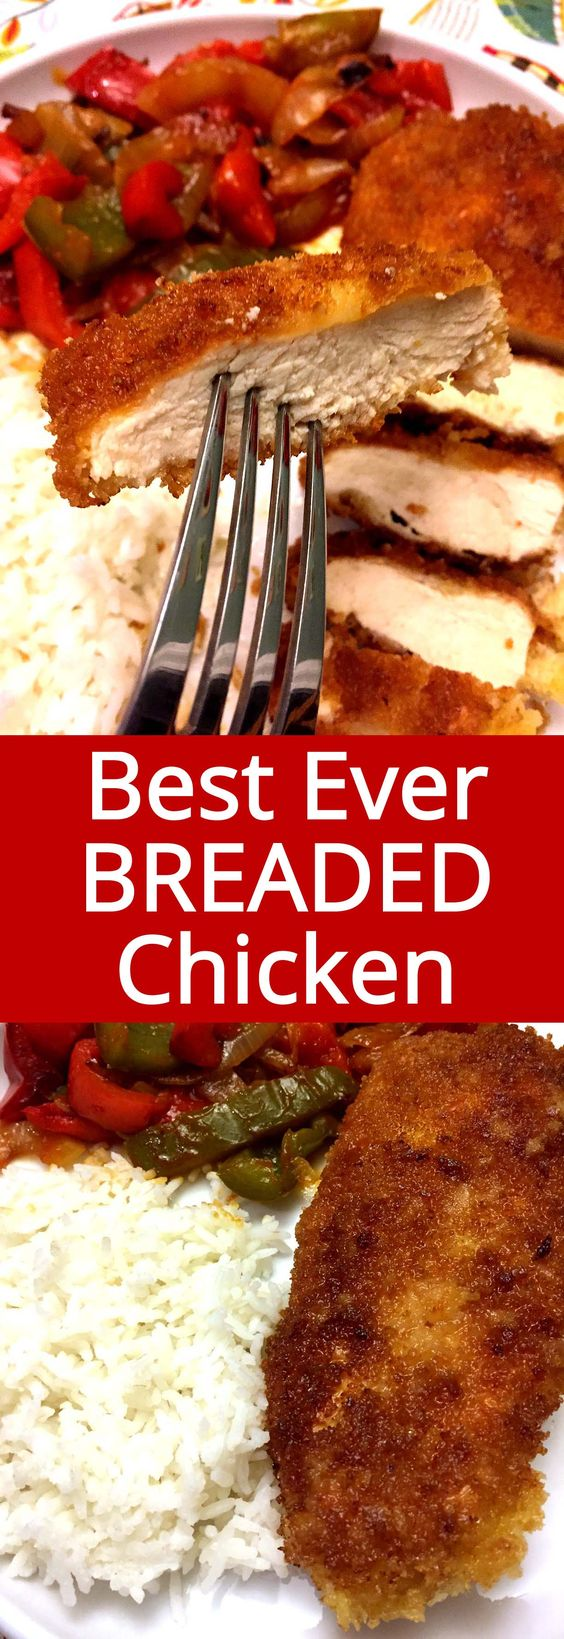 If the chicken breasts are thicker than Easy Crispy Pan-Fried Breaded Chicken Breast Recipe – Best Ever!